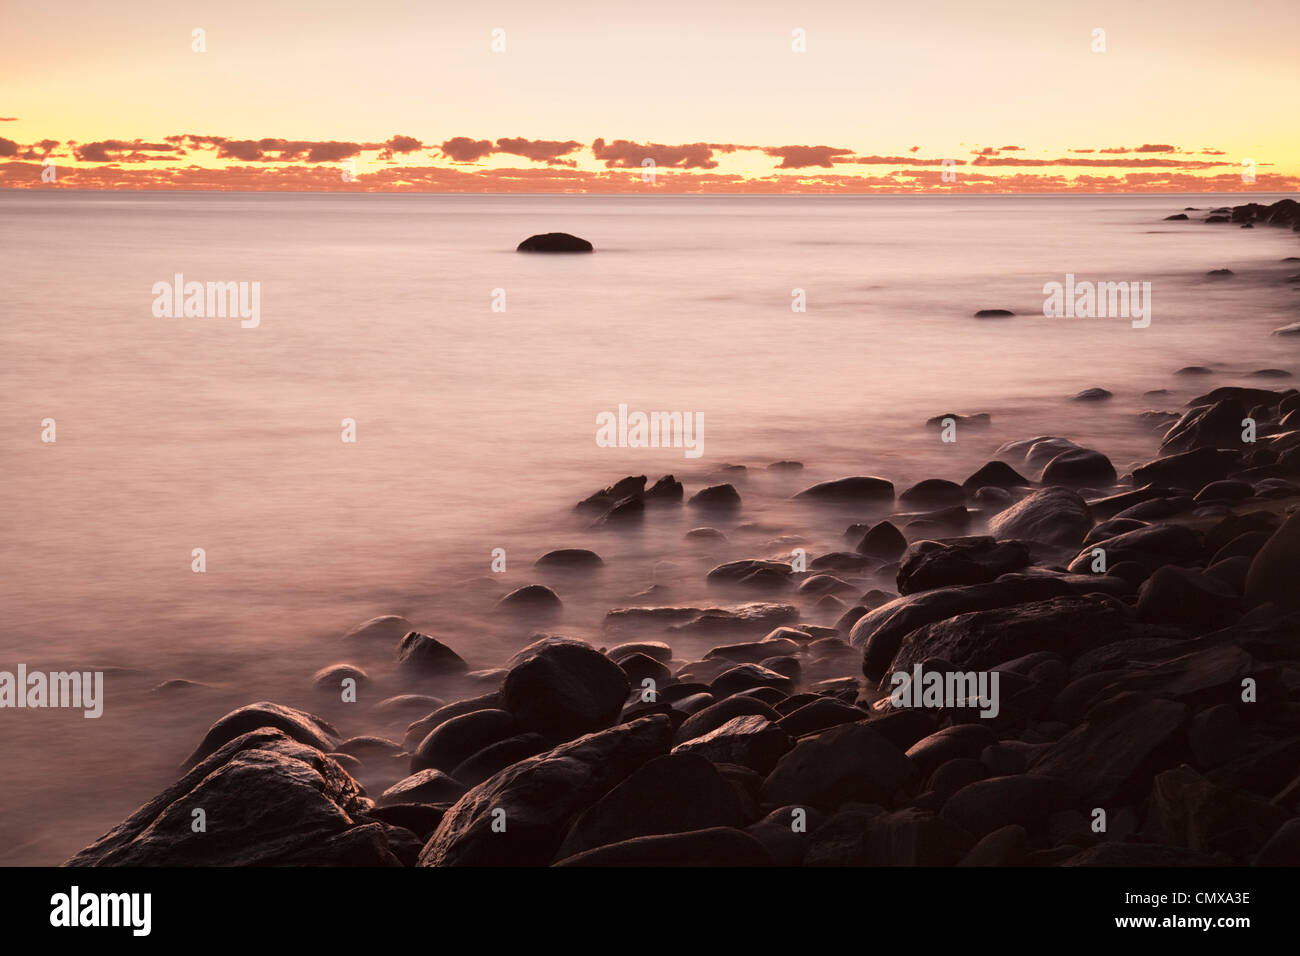 Dawn over the Coral Sea at Pebbly Beach, near Cairns, Queensland, Australia - Stock Image